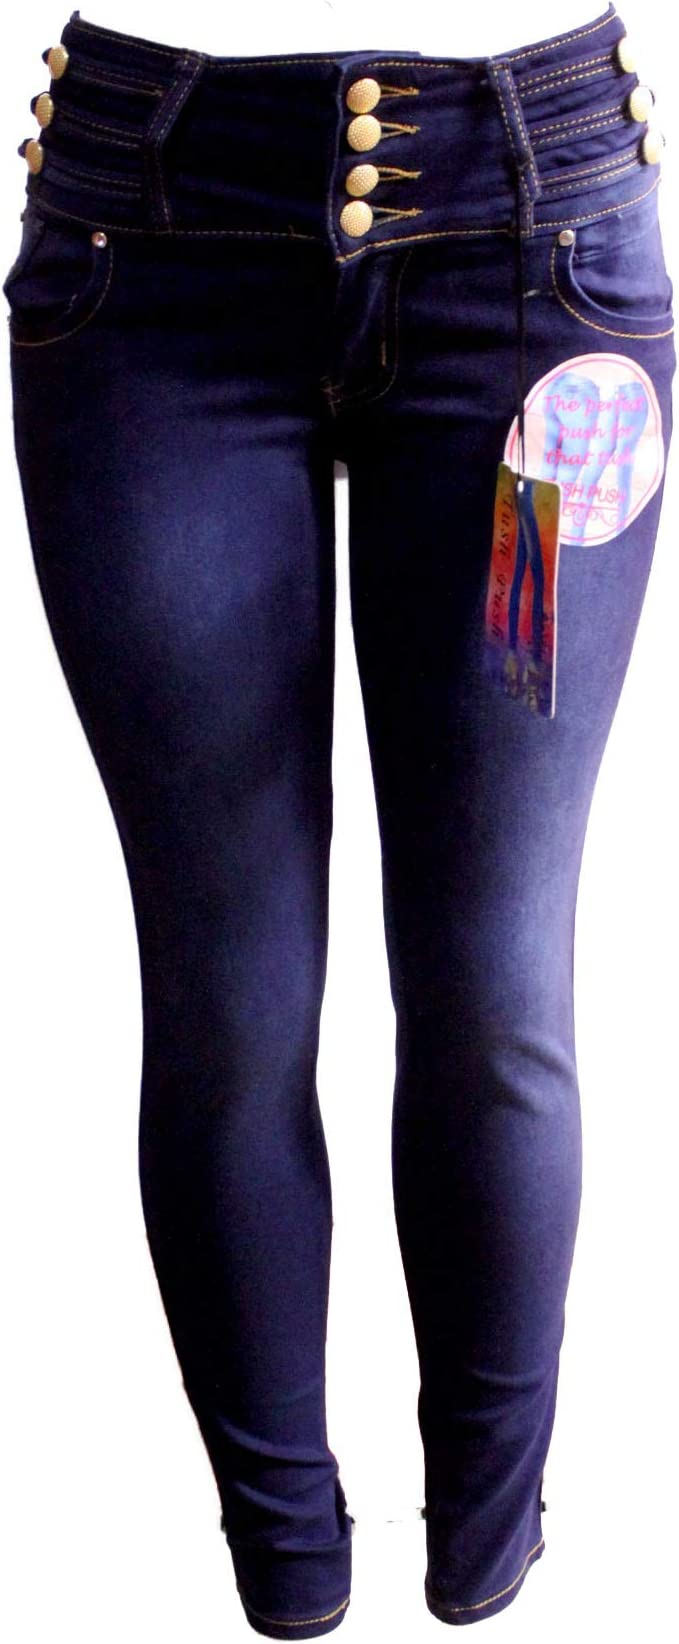 Tush push colombian 1461 med blue stretch levanta cola high waist skinny jeans